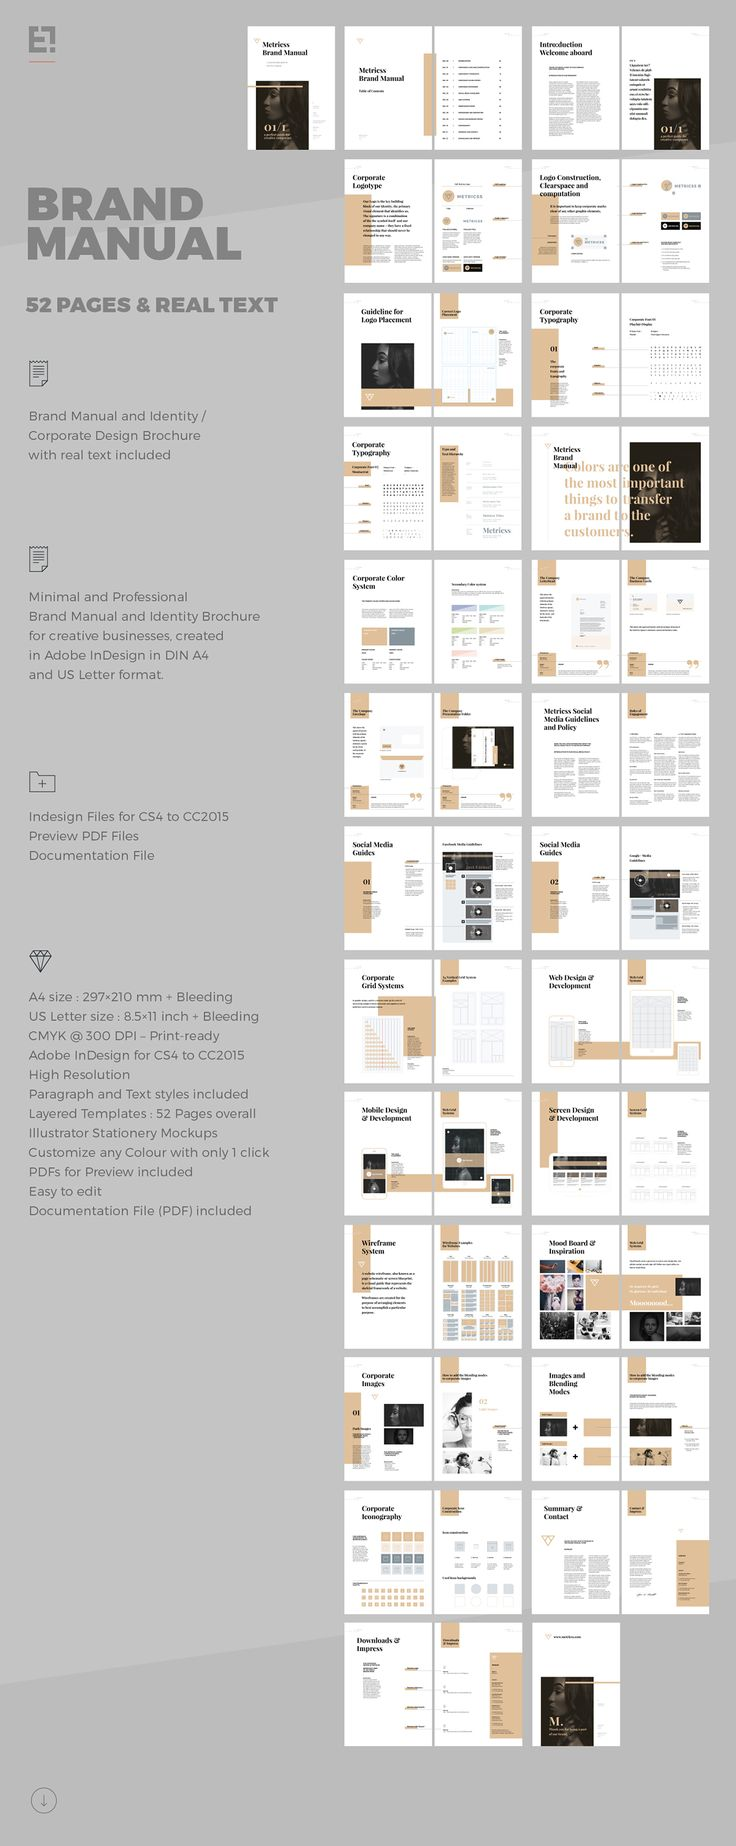 40 best Editorial images on Pinterest   Editorial design, Editorial ...